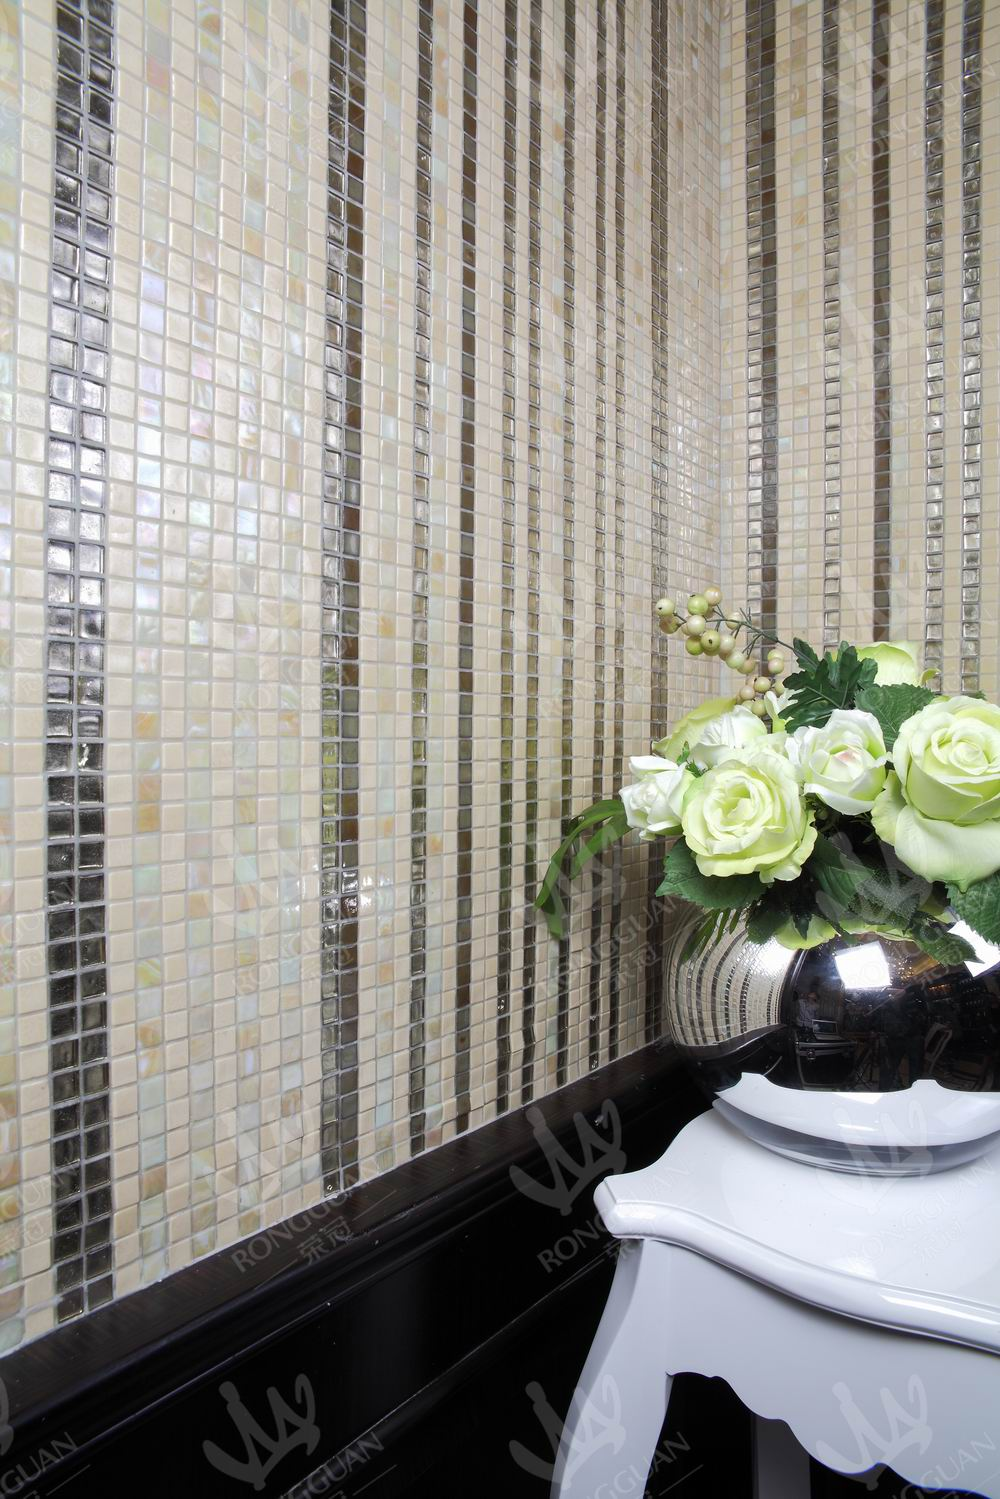 Living room wall tile used mosaic design foshan rongguan for Wall tiles living room ideas